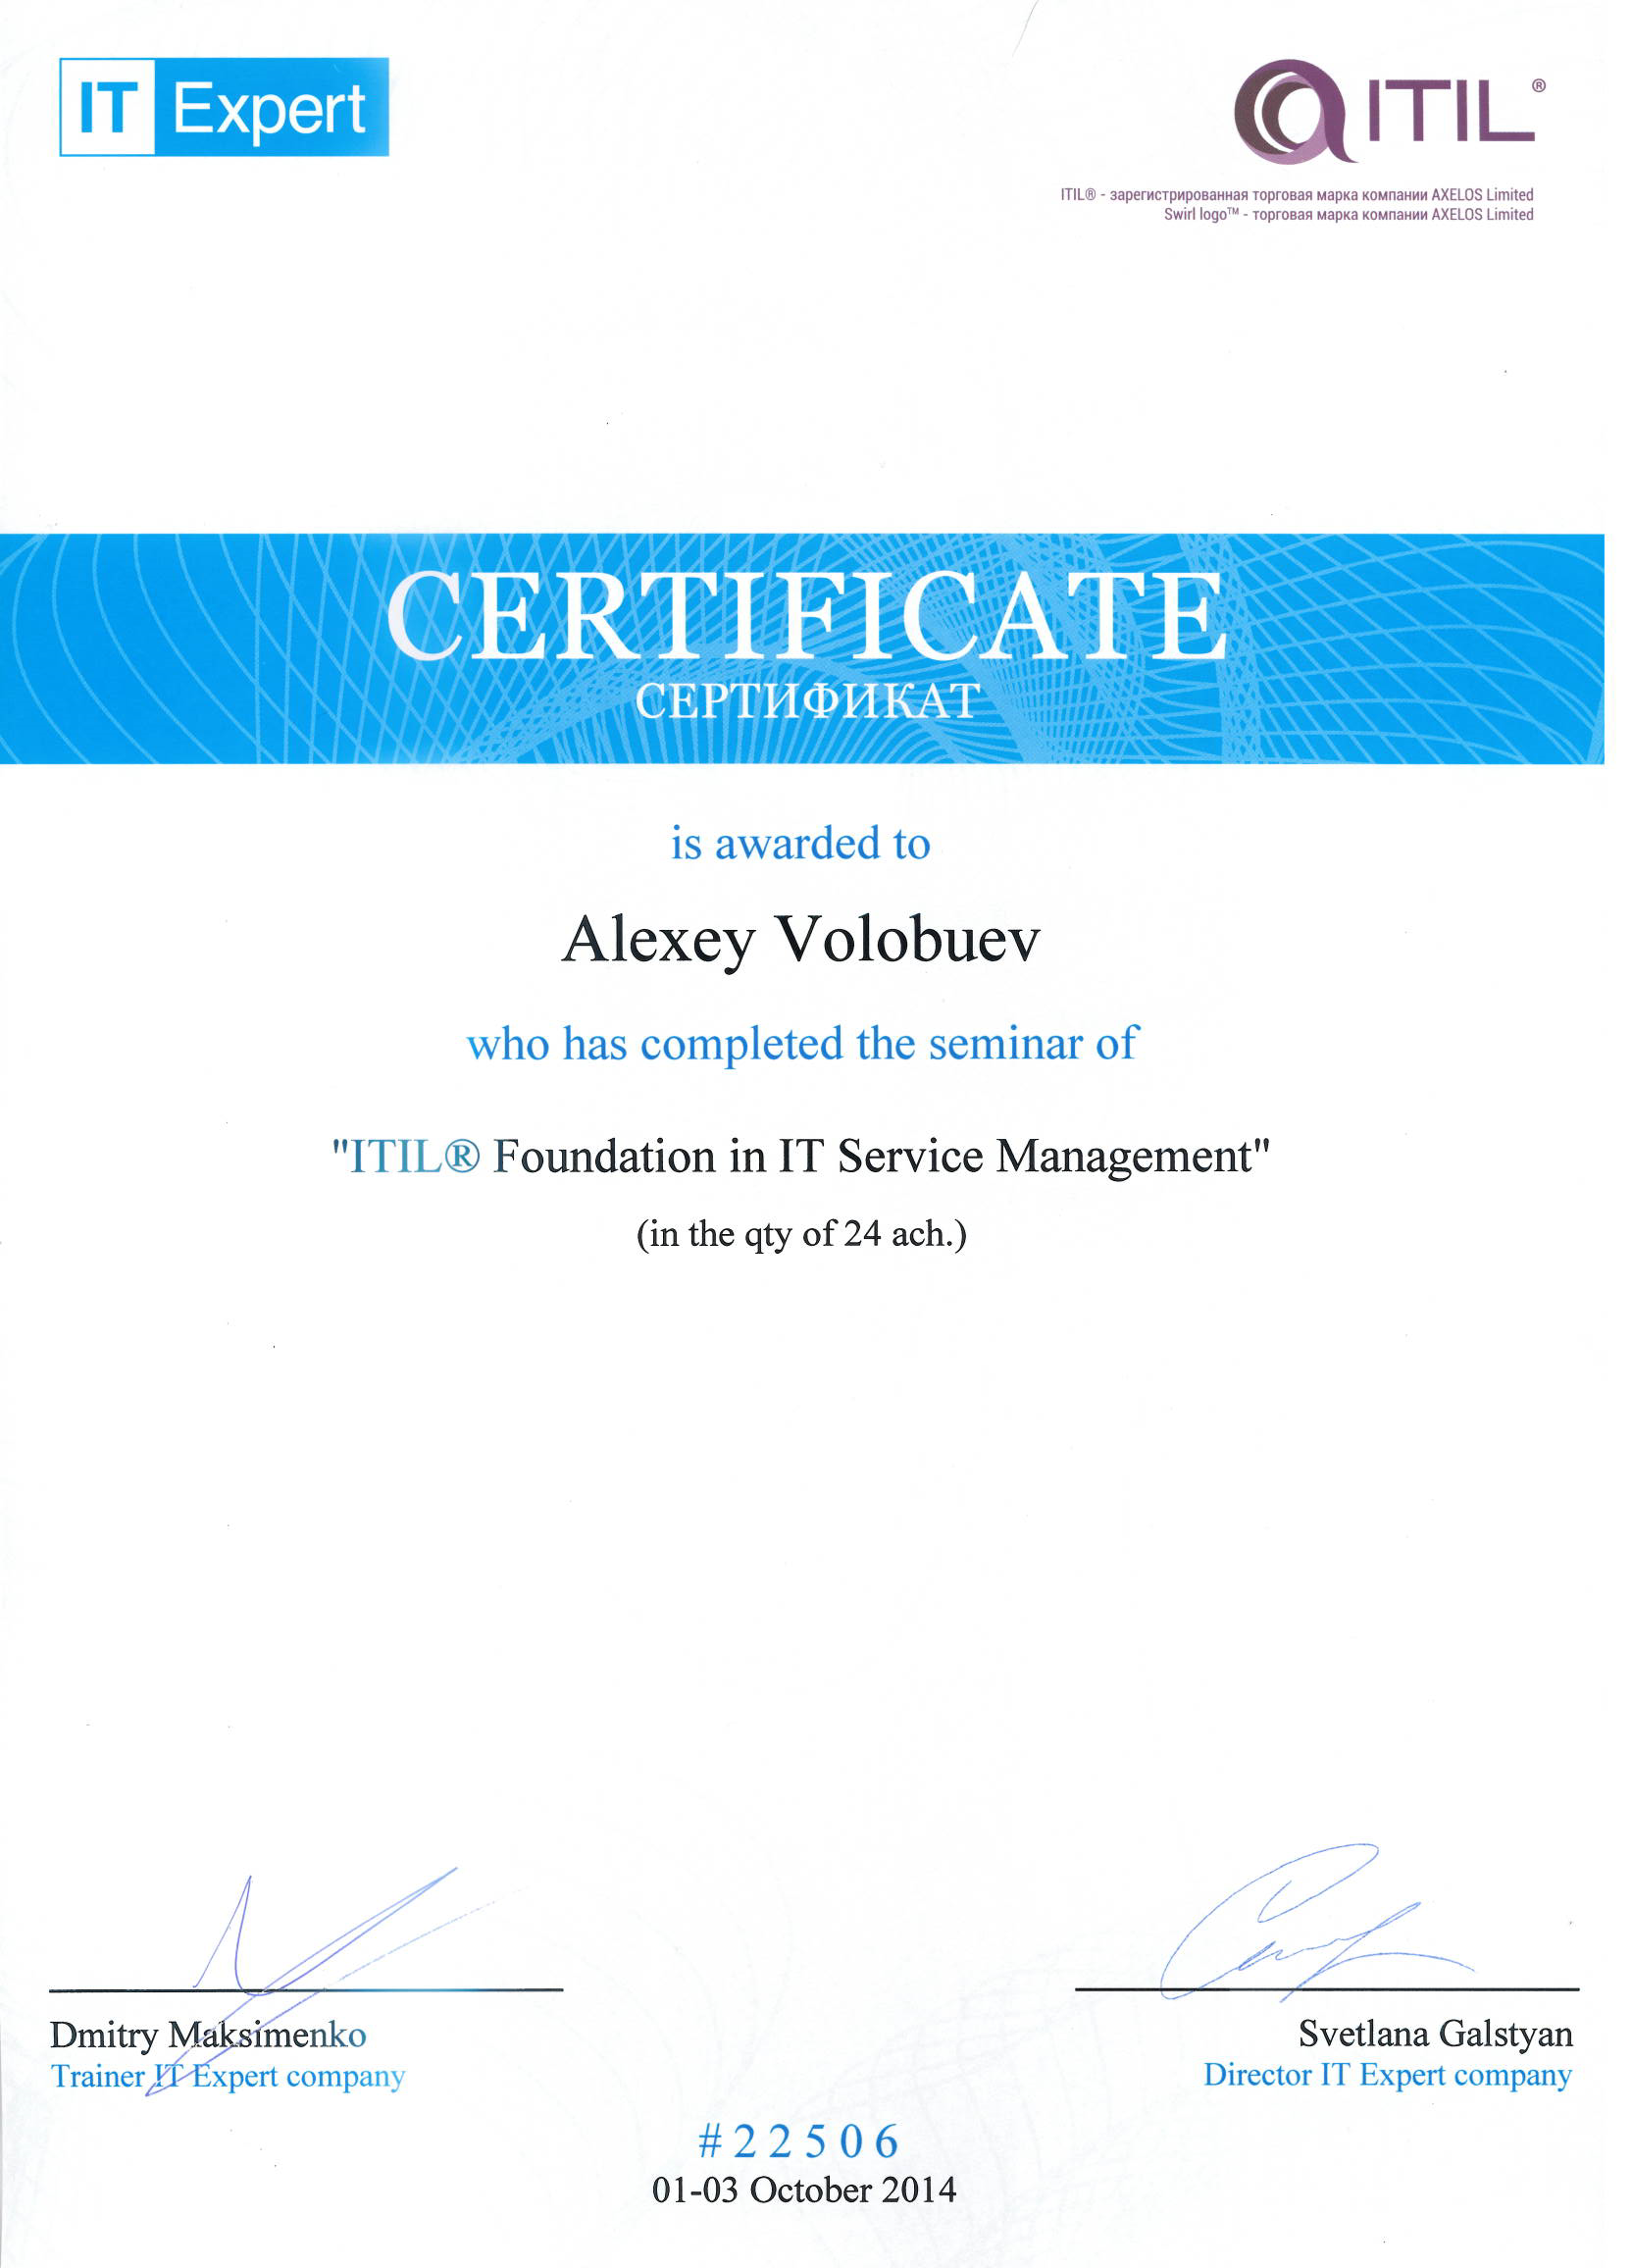 ITIL FOUNDATION 2011